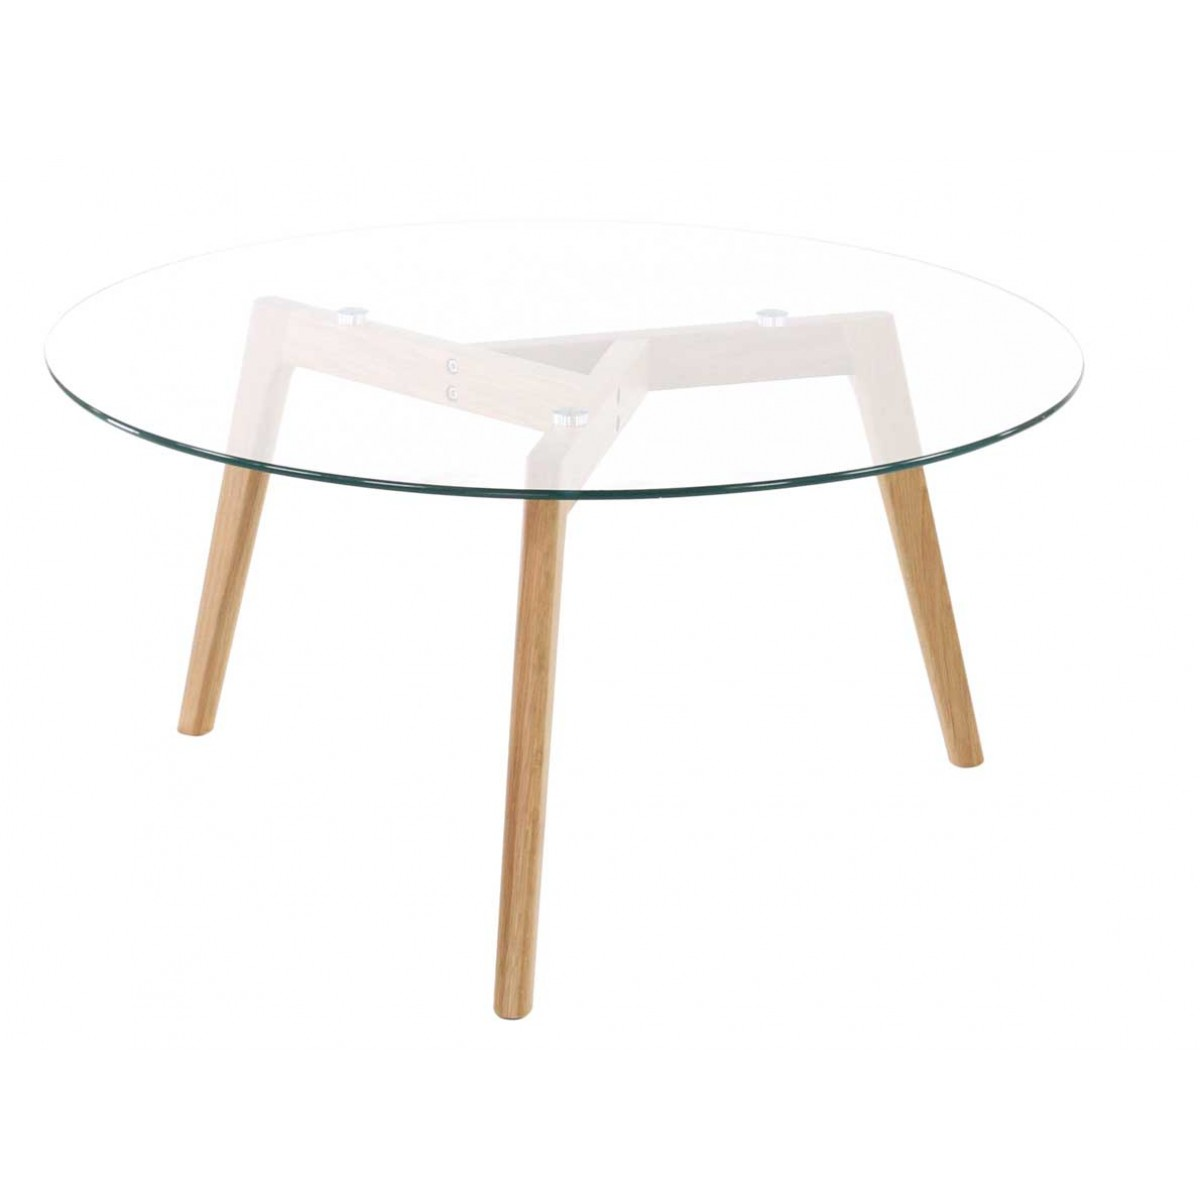 Table basse en verre ronde design scandie mooviin - Table basse verre but ...